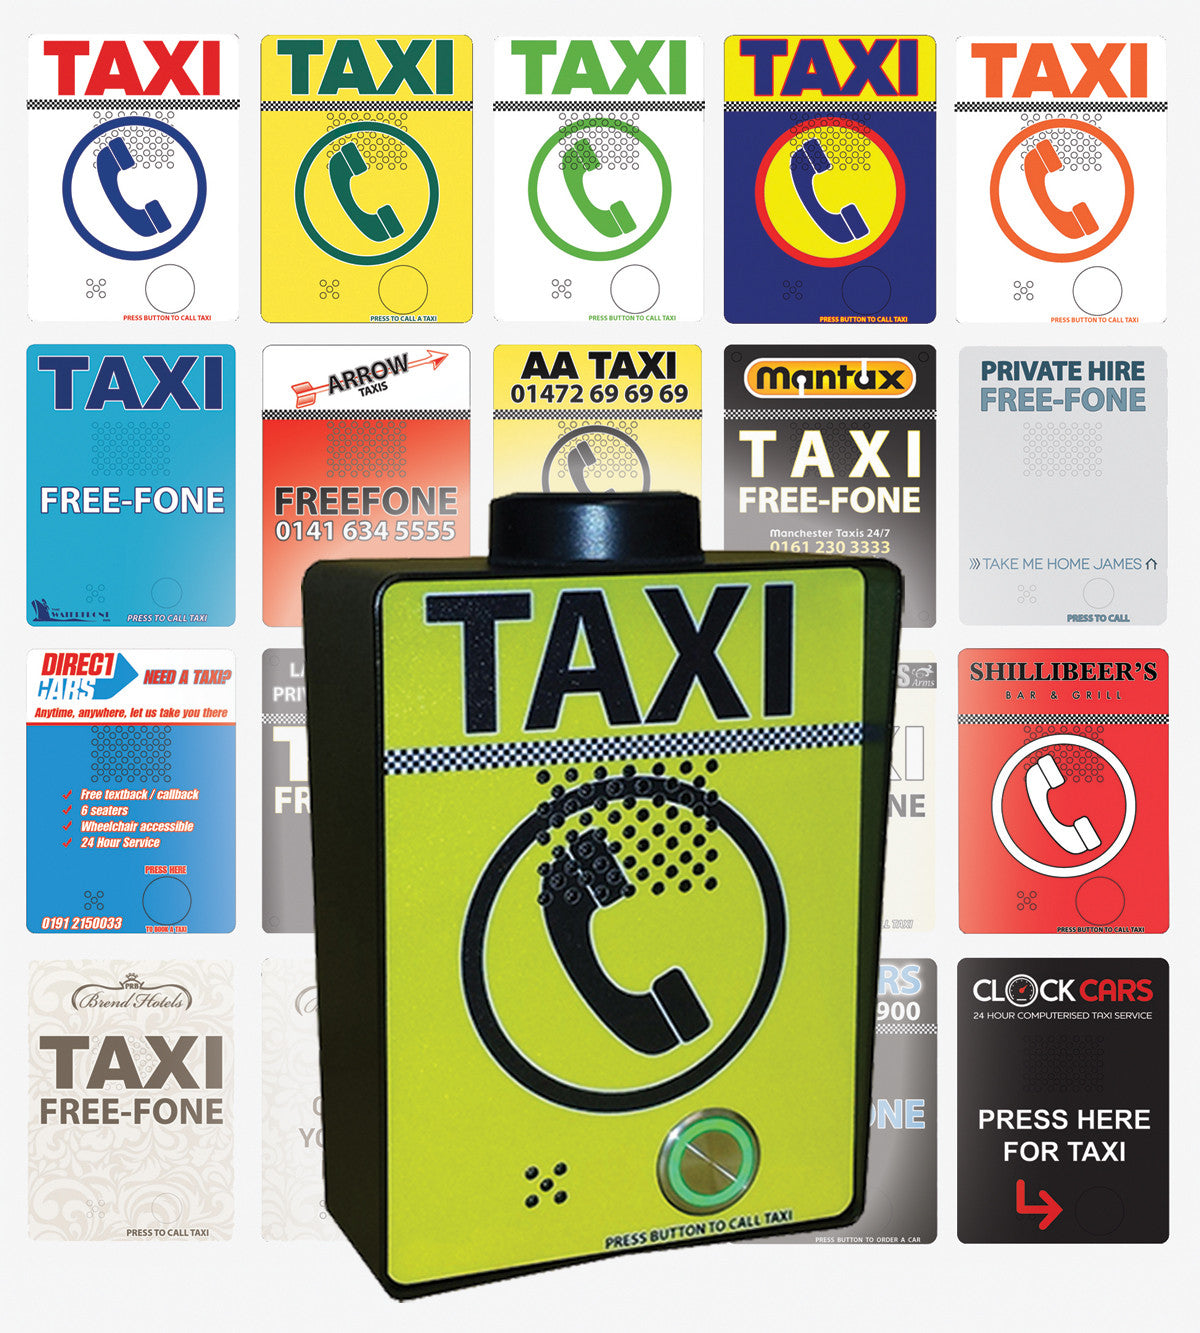 3G GSM Taxi Freephone - Anti-Vandal incl. Custom Design